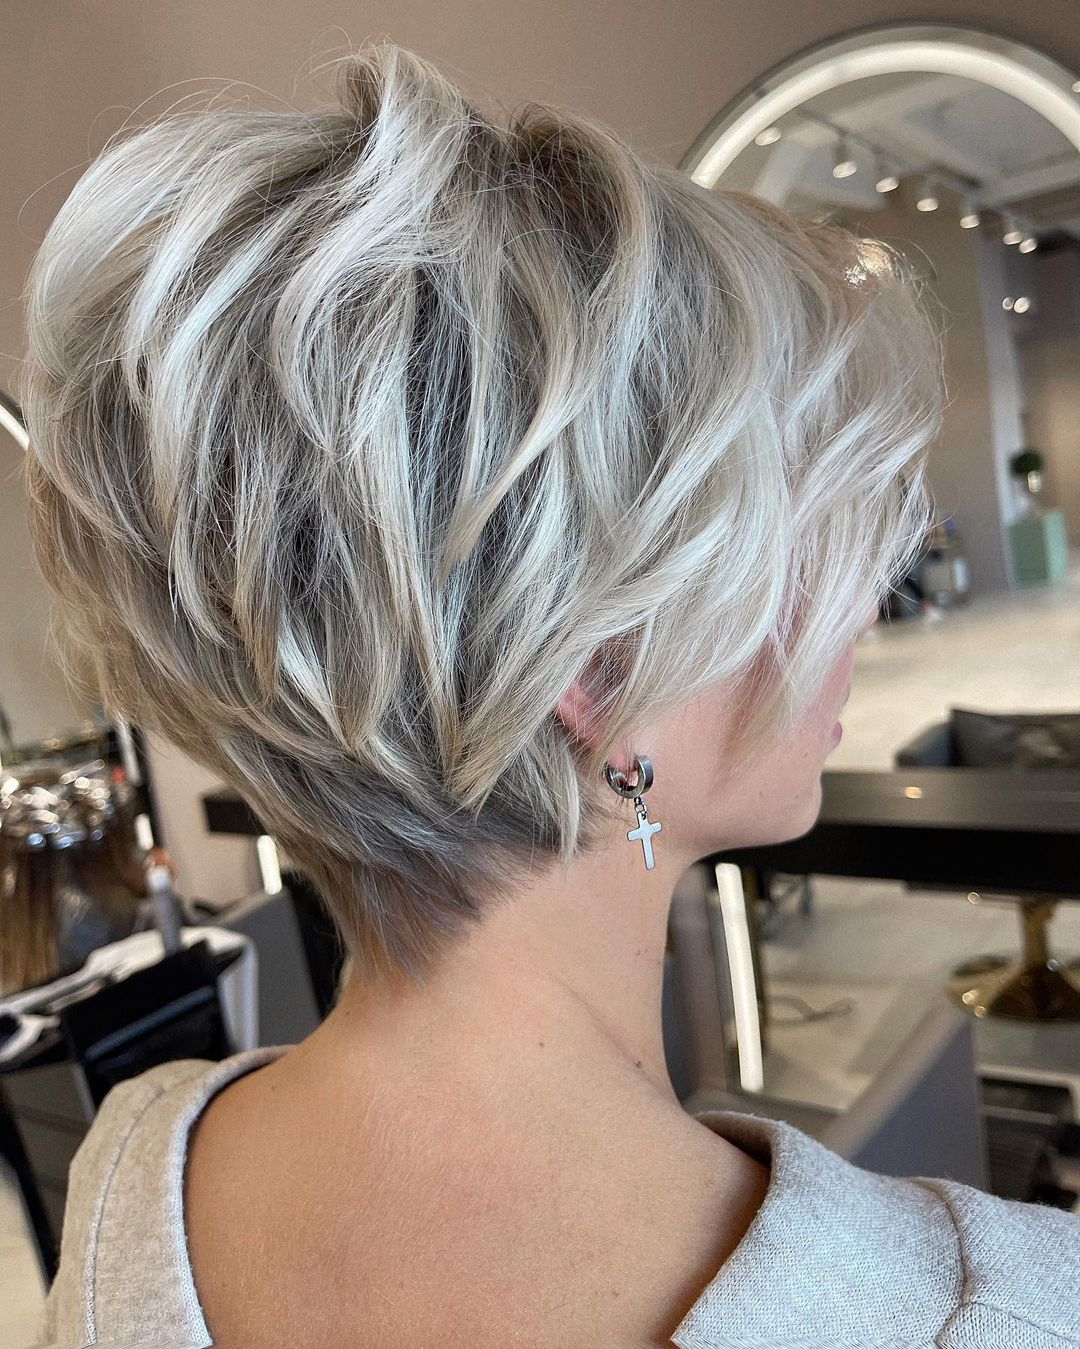 Stylish Short Haircuts and Short Hair Styles for Women 2021- 2022